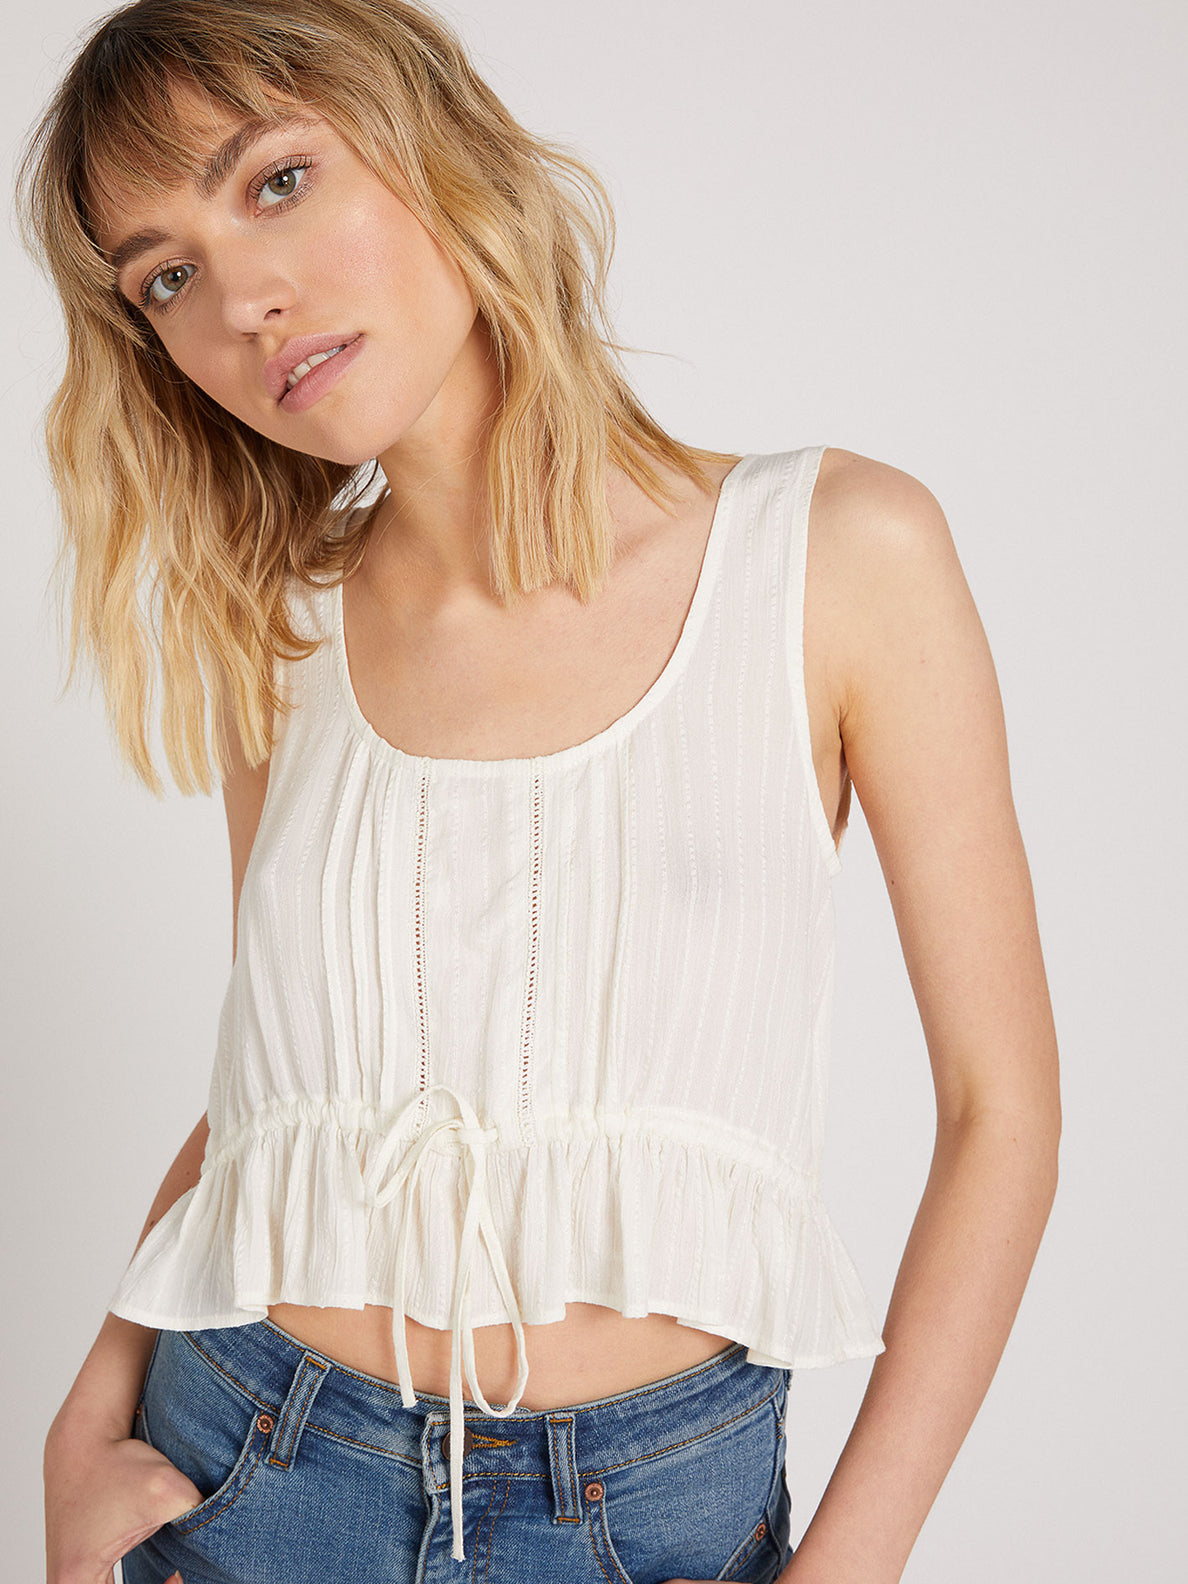 Anytime N Place Cami White (B0422001_WHT) [07]